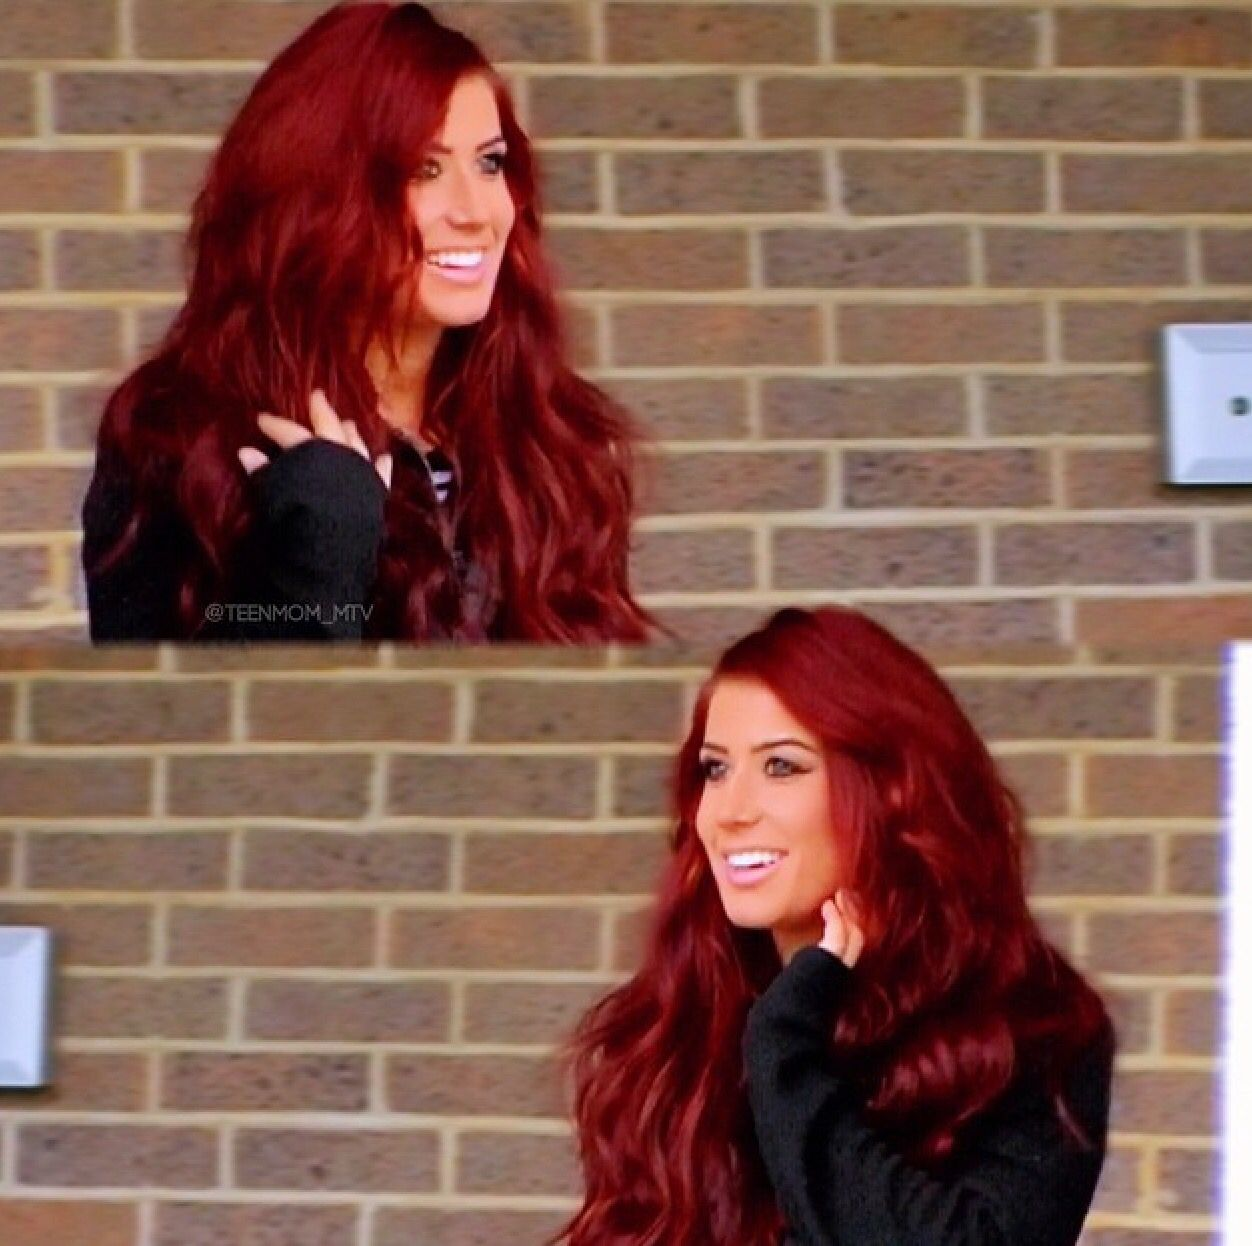 Insta Twitter Brianamcevoy Chelsea Houska Hair Color Chelsea Houska Hair Hair Icon